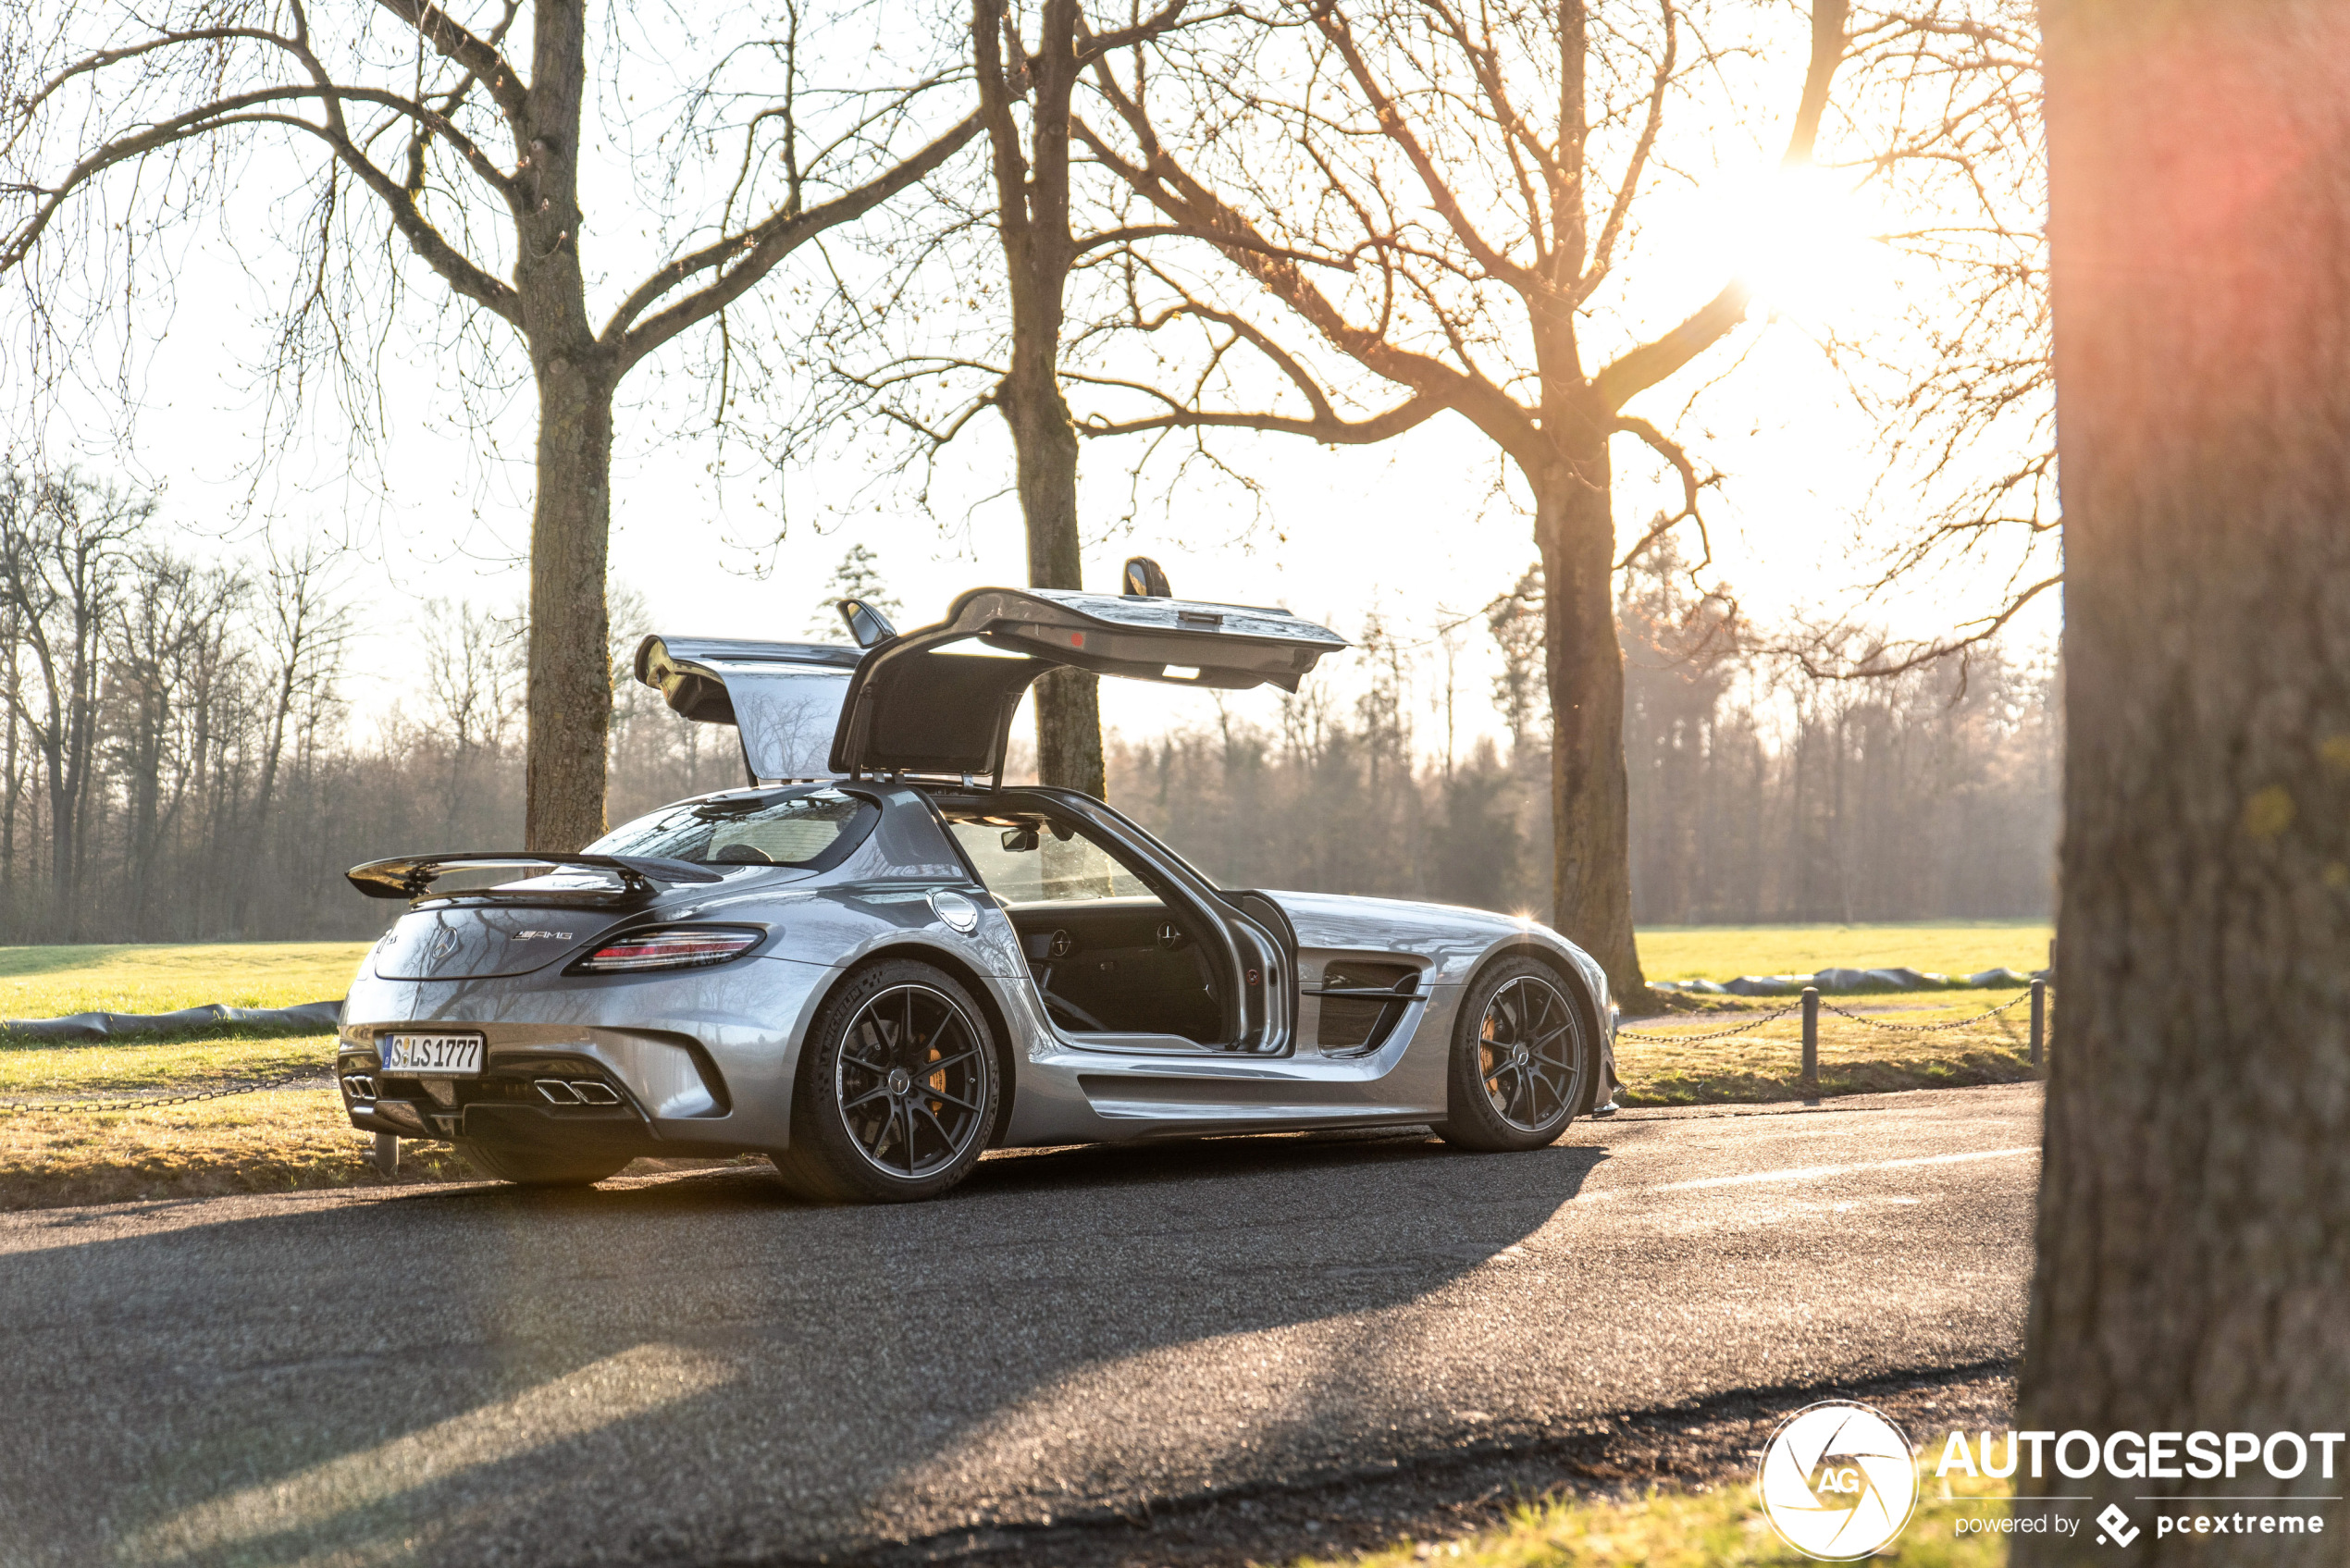 SLS AMG Black Series spotted in all its glory